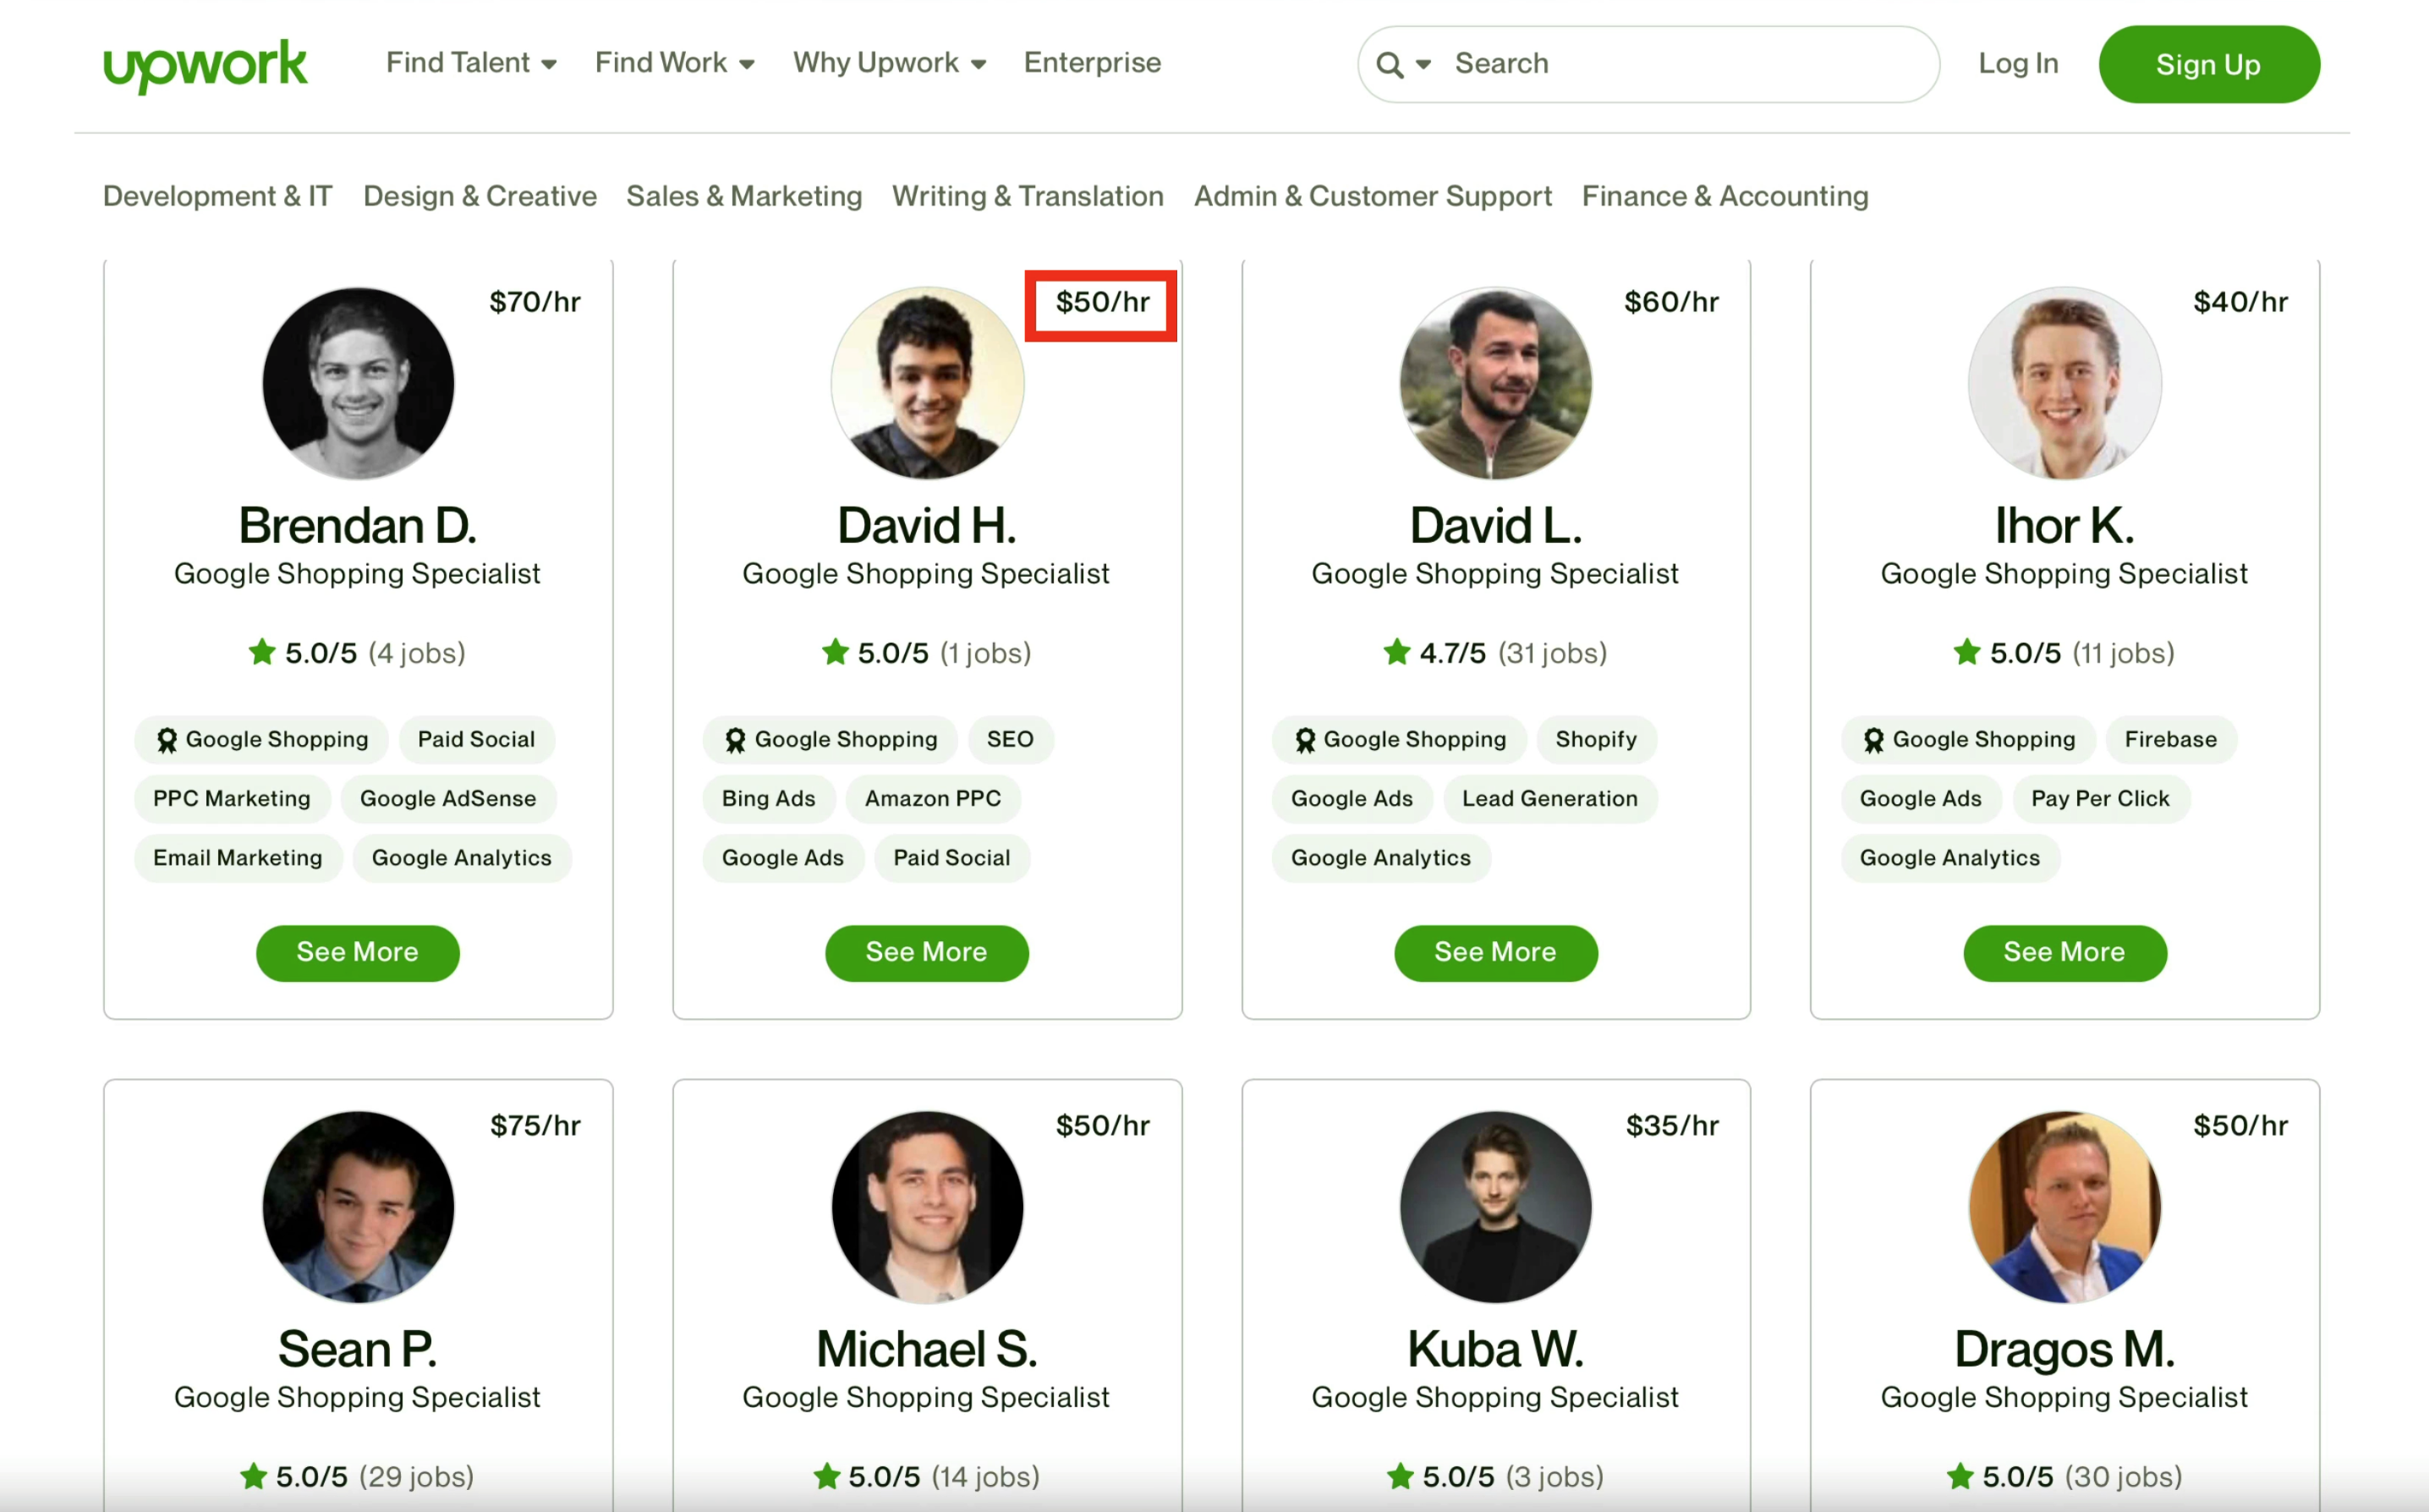 Google shopping specialists on Upwork